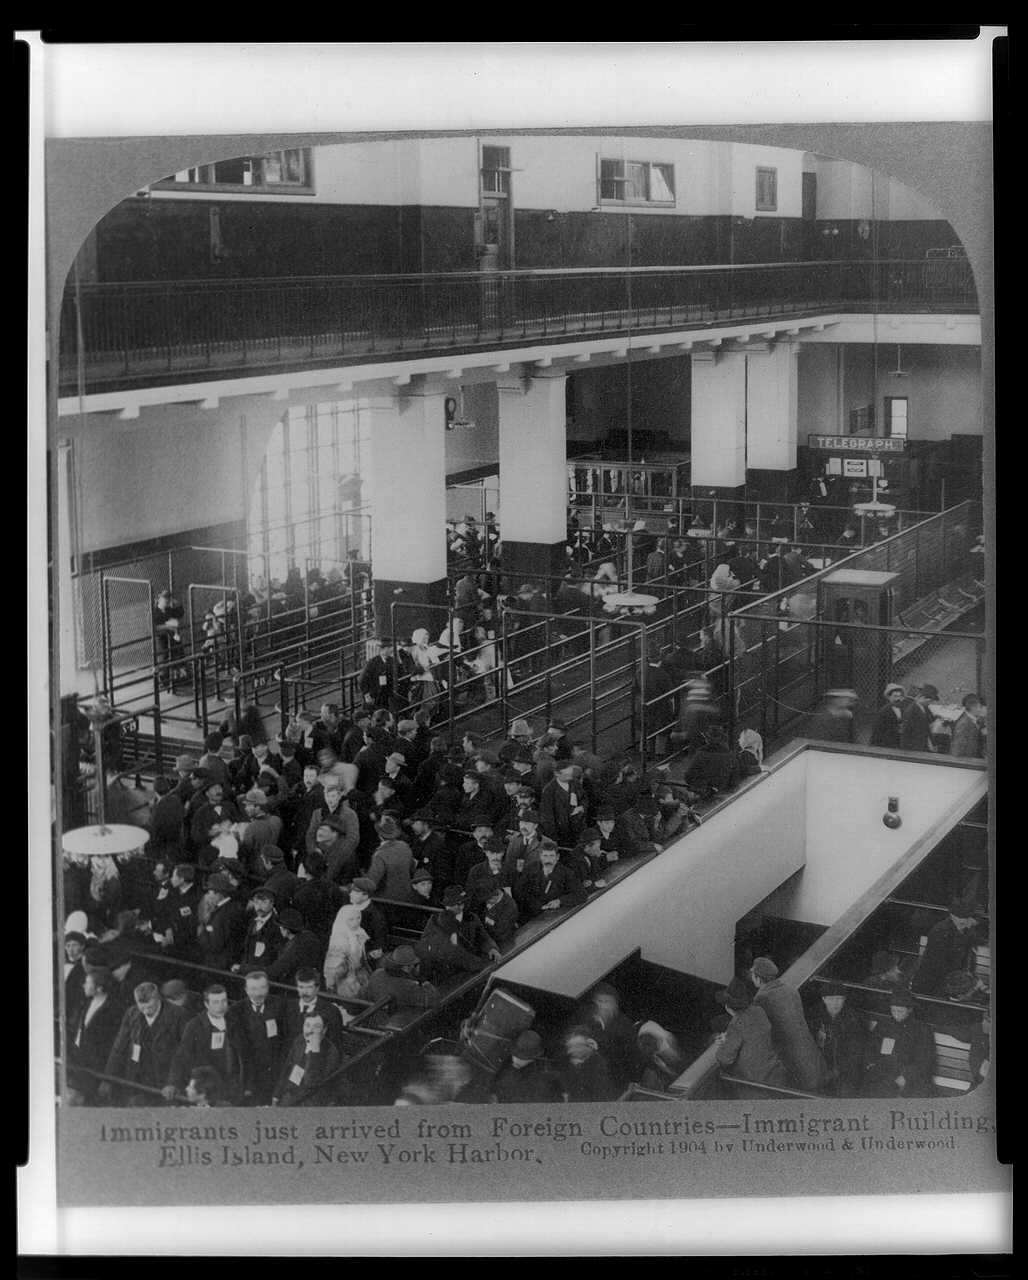 Black-and-white photograph of many people sitting on benches inside a great hall, with an American flag displayed from the balcony